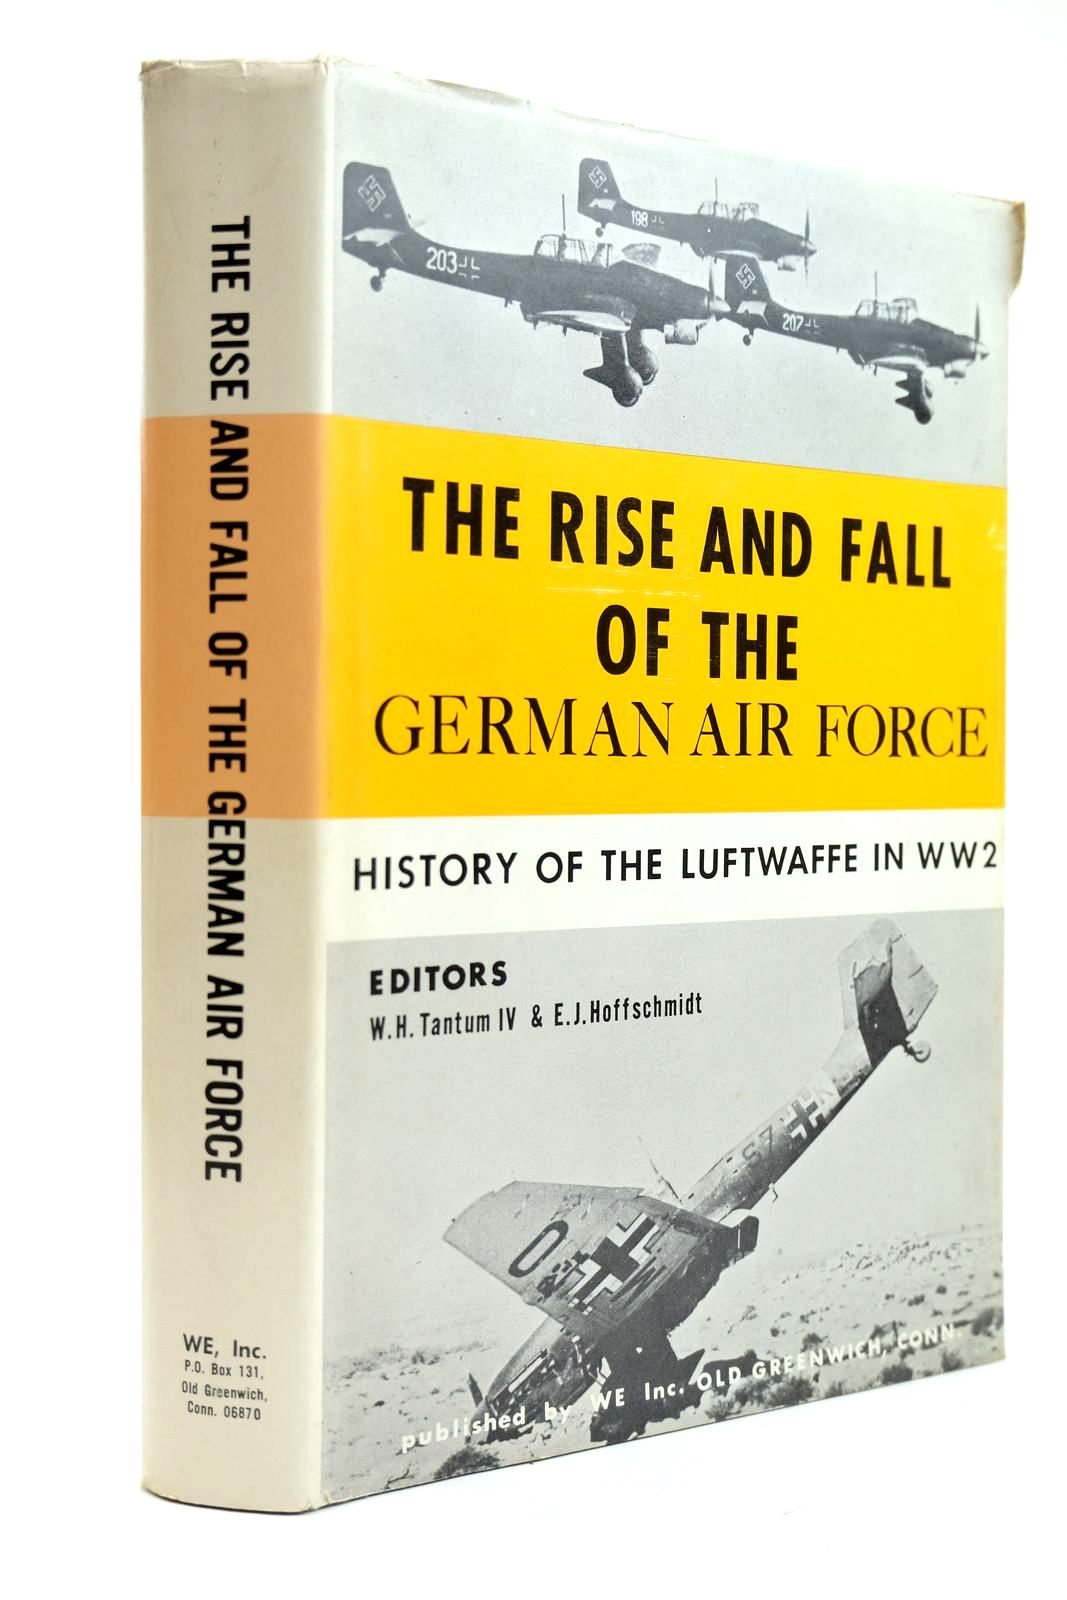 Photo of THE RISE AND FALL OF THE GERMAN AIR FORCE (1933 TO 1945) written by Tantum, W.H. Hoffschmidt, E.J. published by WE Inc. (STOCK CODE: 2131907)  for sale by Stella & Rose's Books